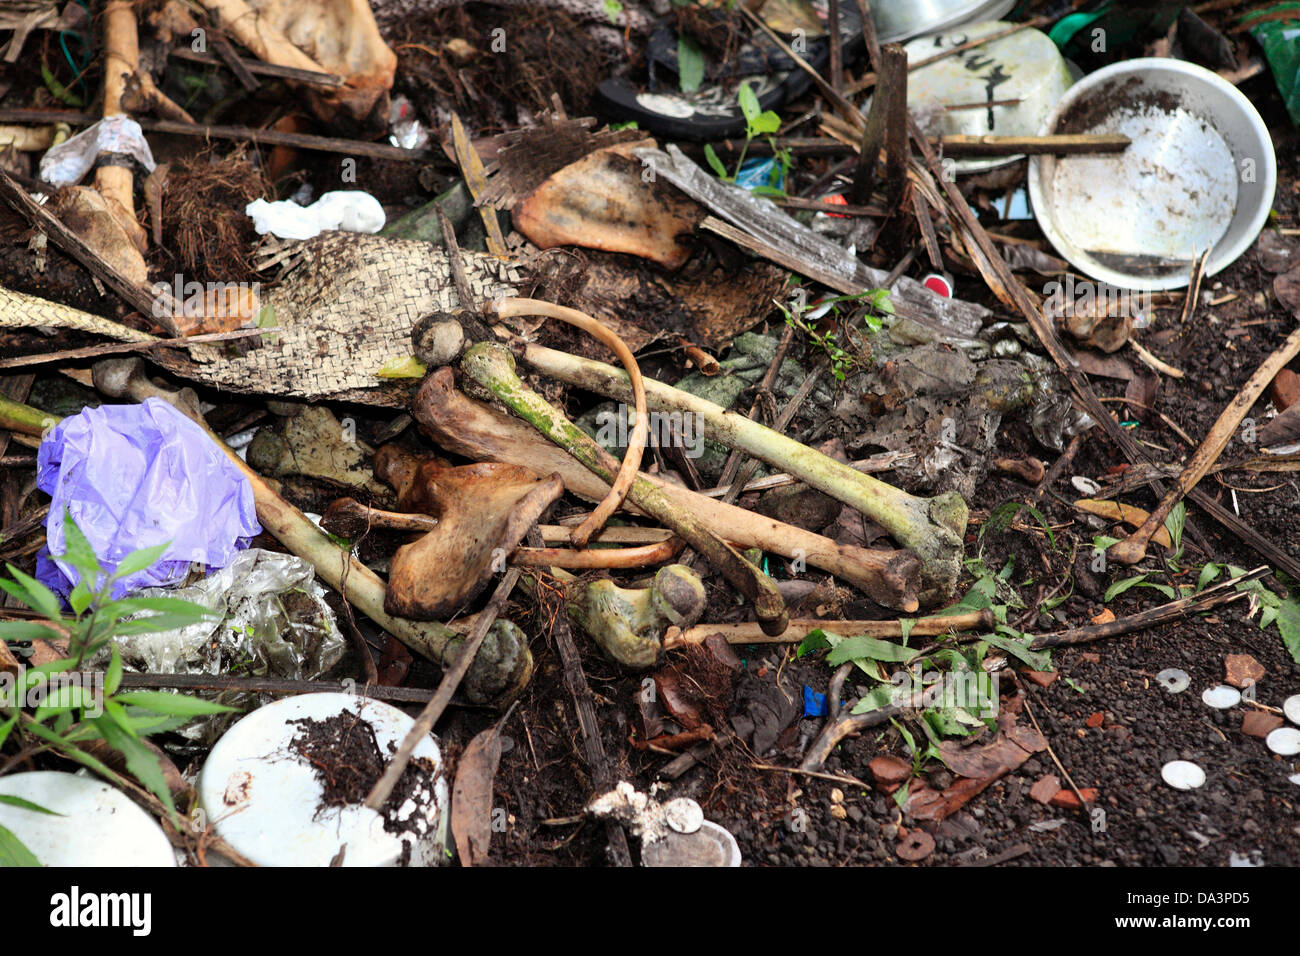 Human bones discarded as rubbish at the cemetery at Trunyan Aga village, Bali. Indonesia - Stock Image